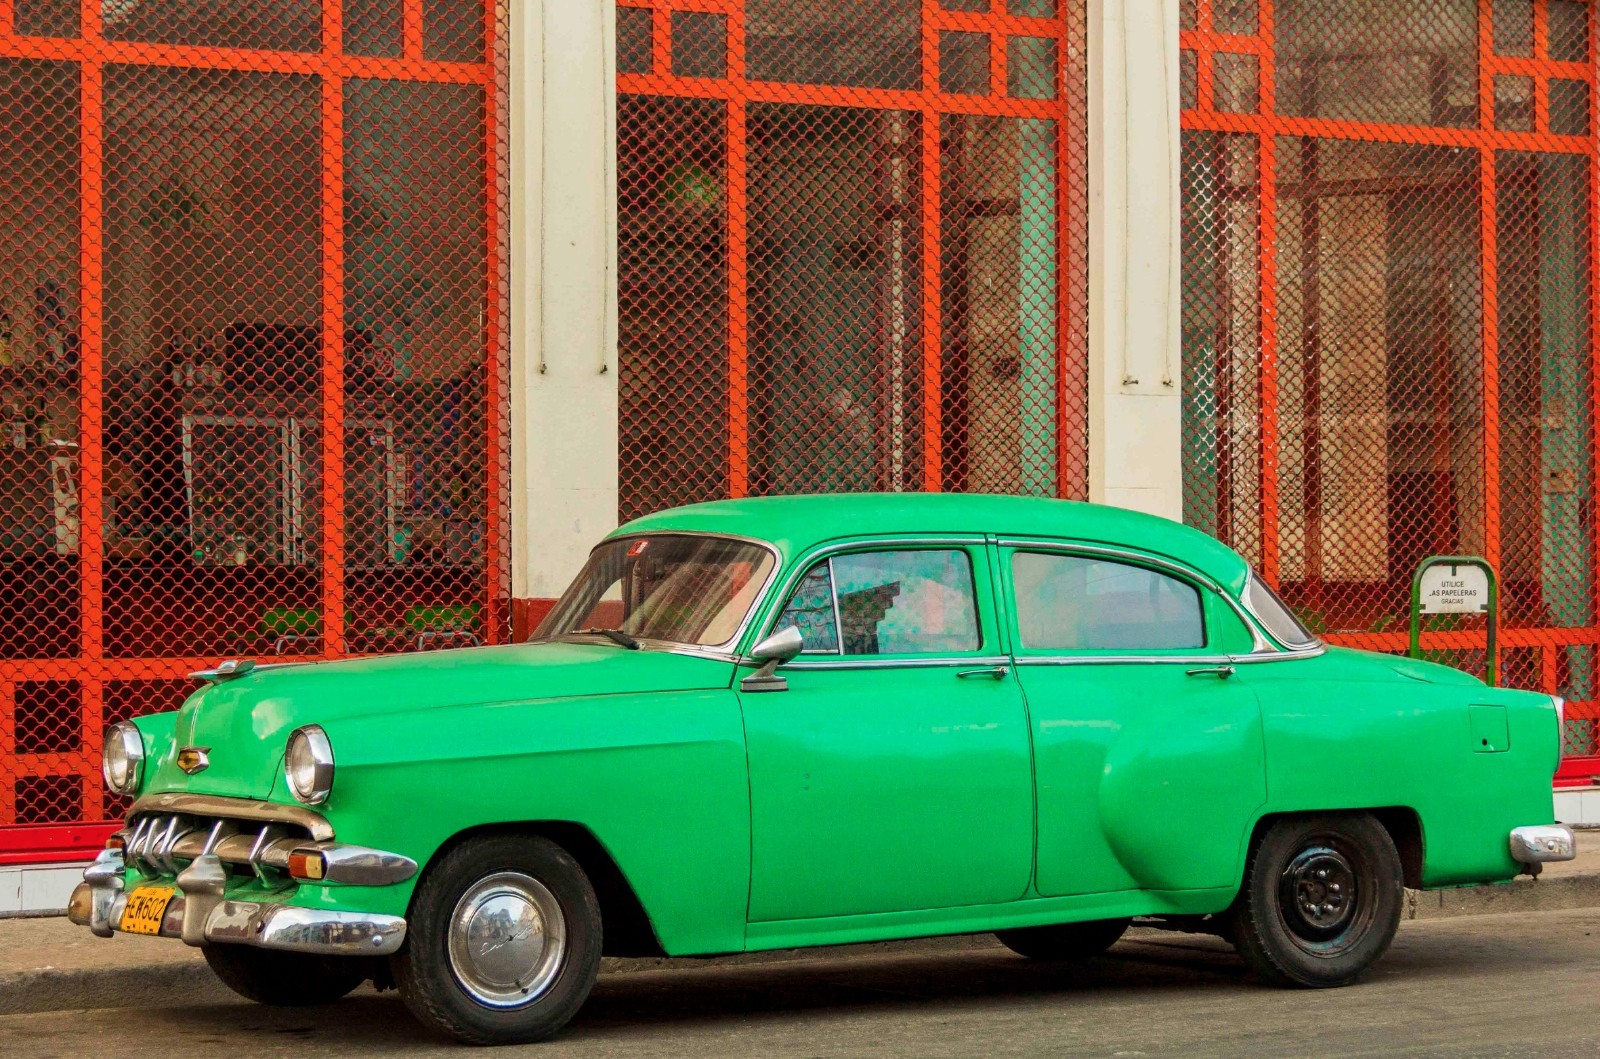 cuba lifts ban on new cars after almost 55 years autoevolution. Black Bedroom Furniture Sets. Home Design Ideas